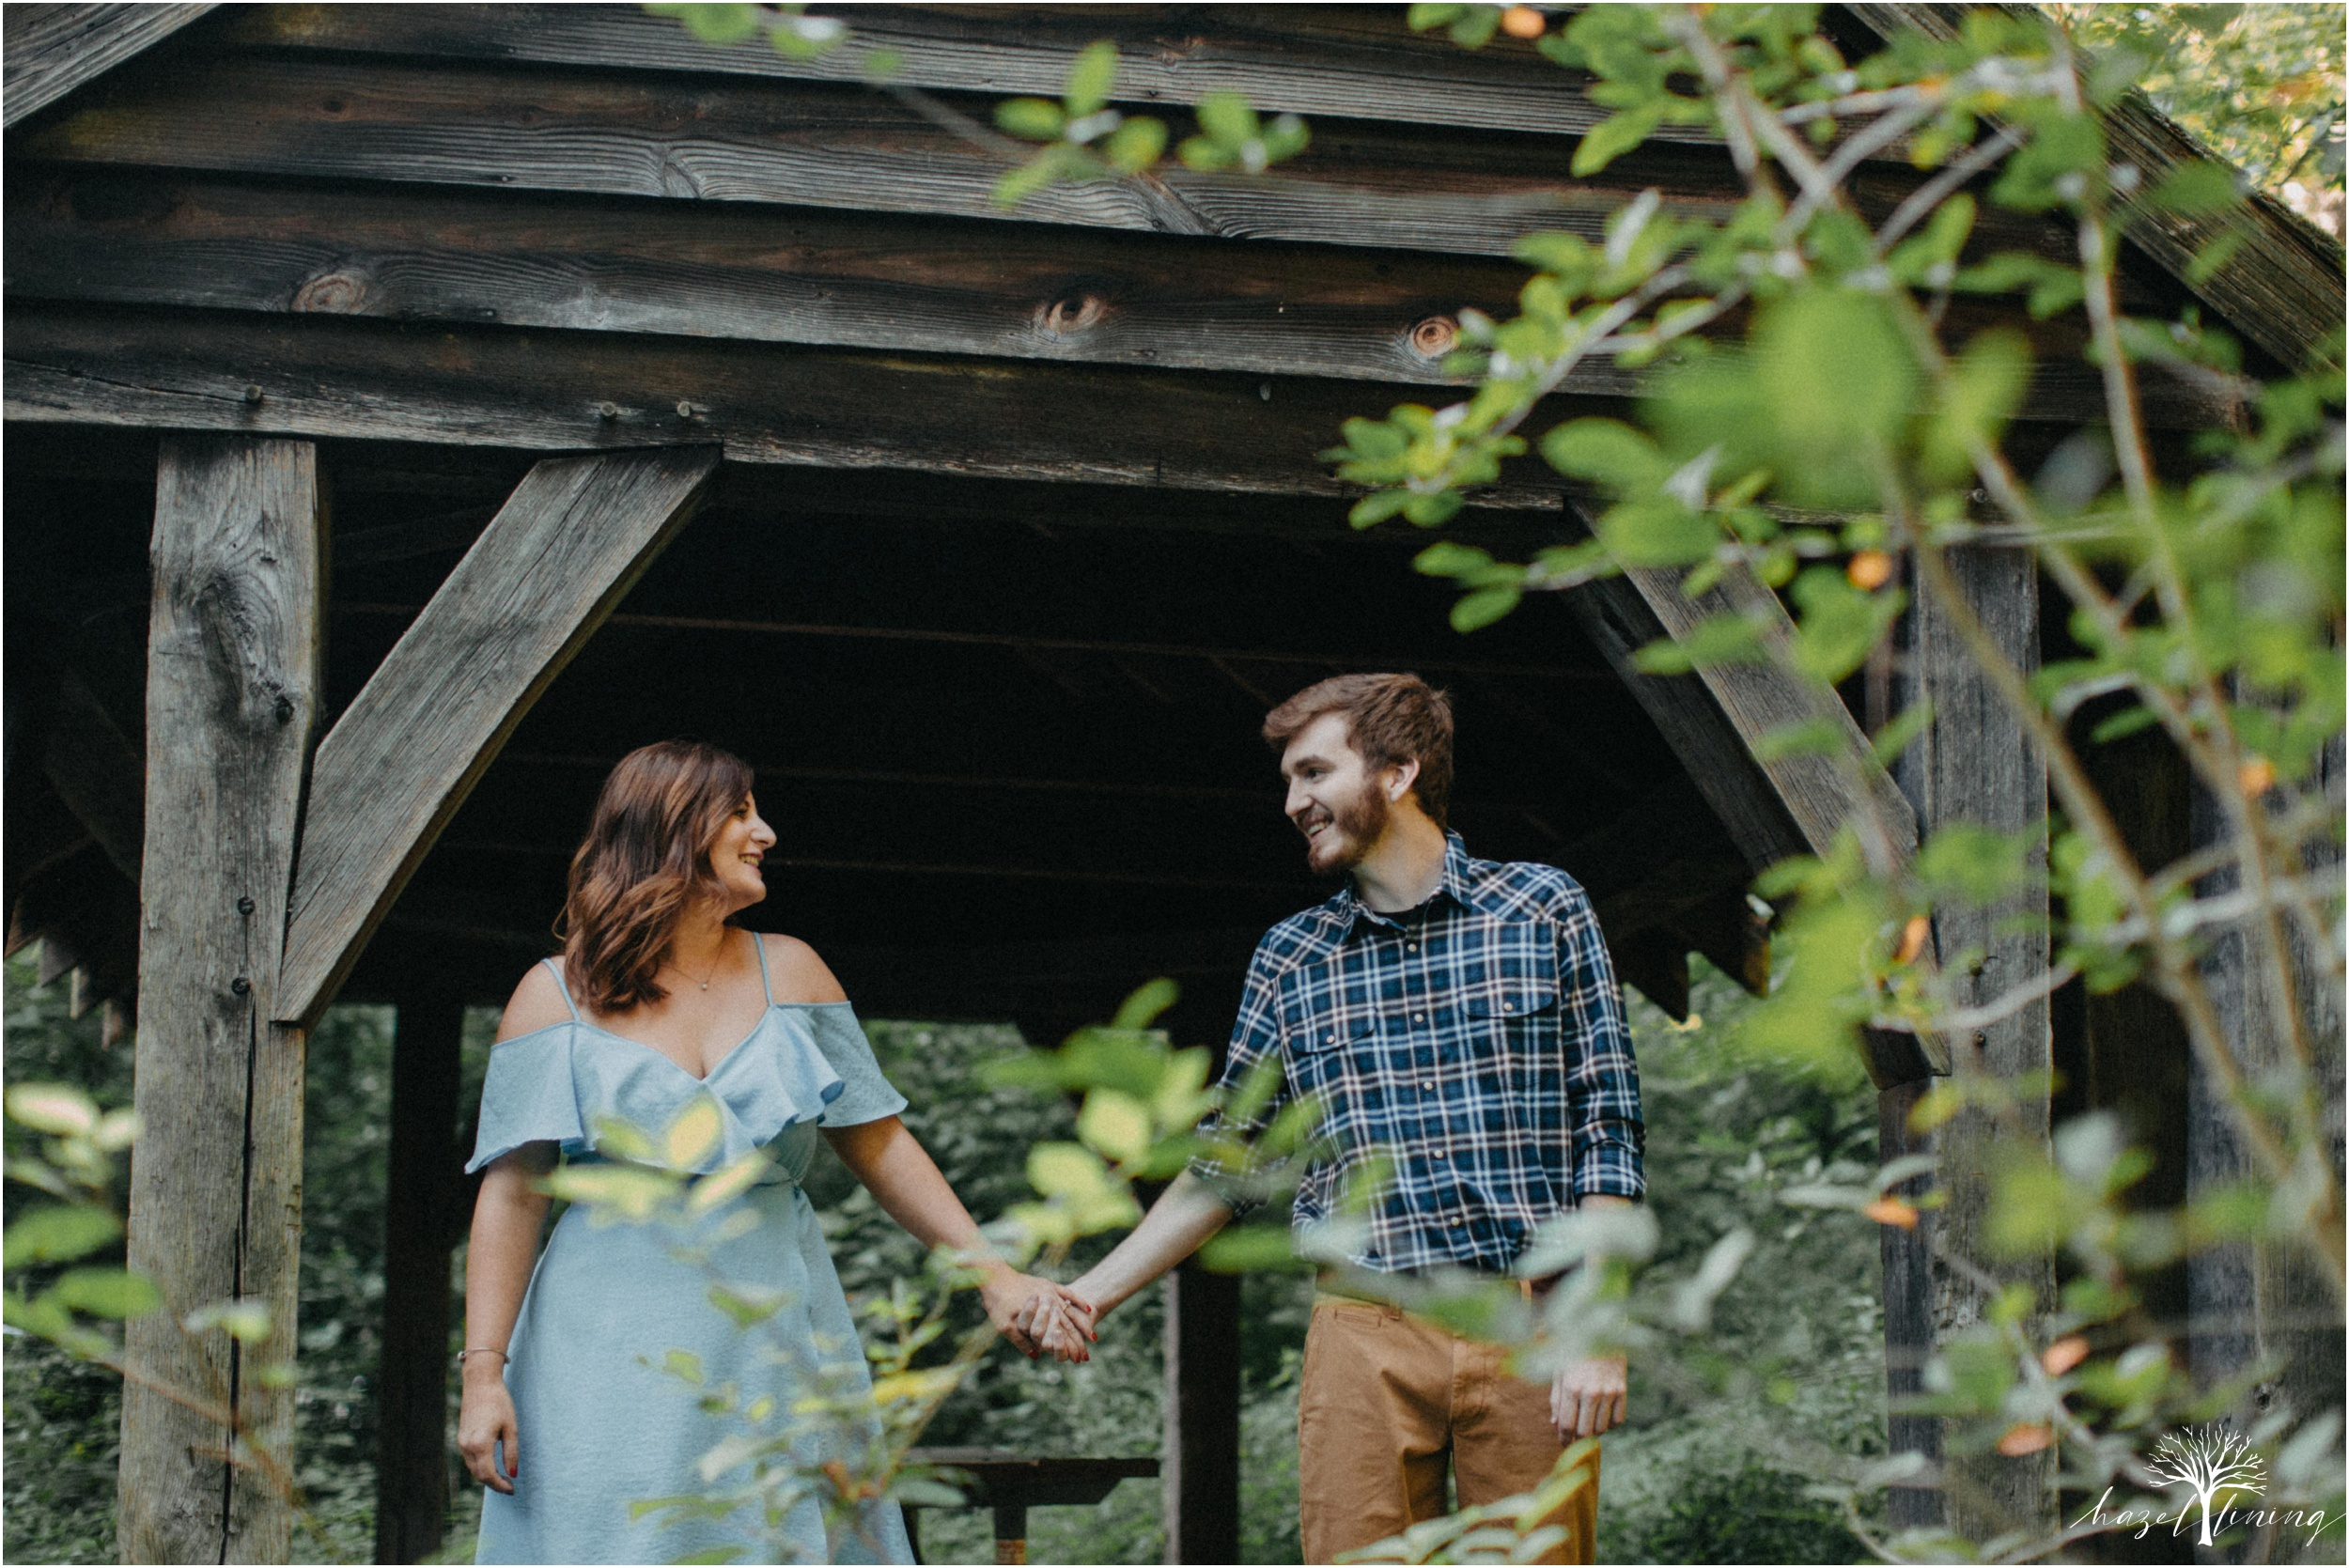 paige-kochey-chris-graham-valley-green-wissahickon-park-philadelphia-summer-engagement-session-hazel-lining-photography-destination-elopement-wedding-engagement-photography_0016.jpg